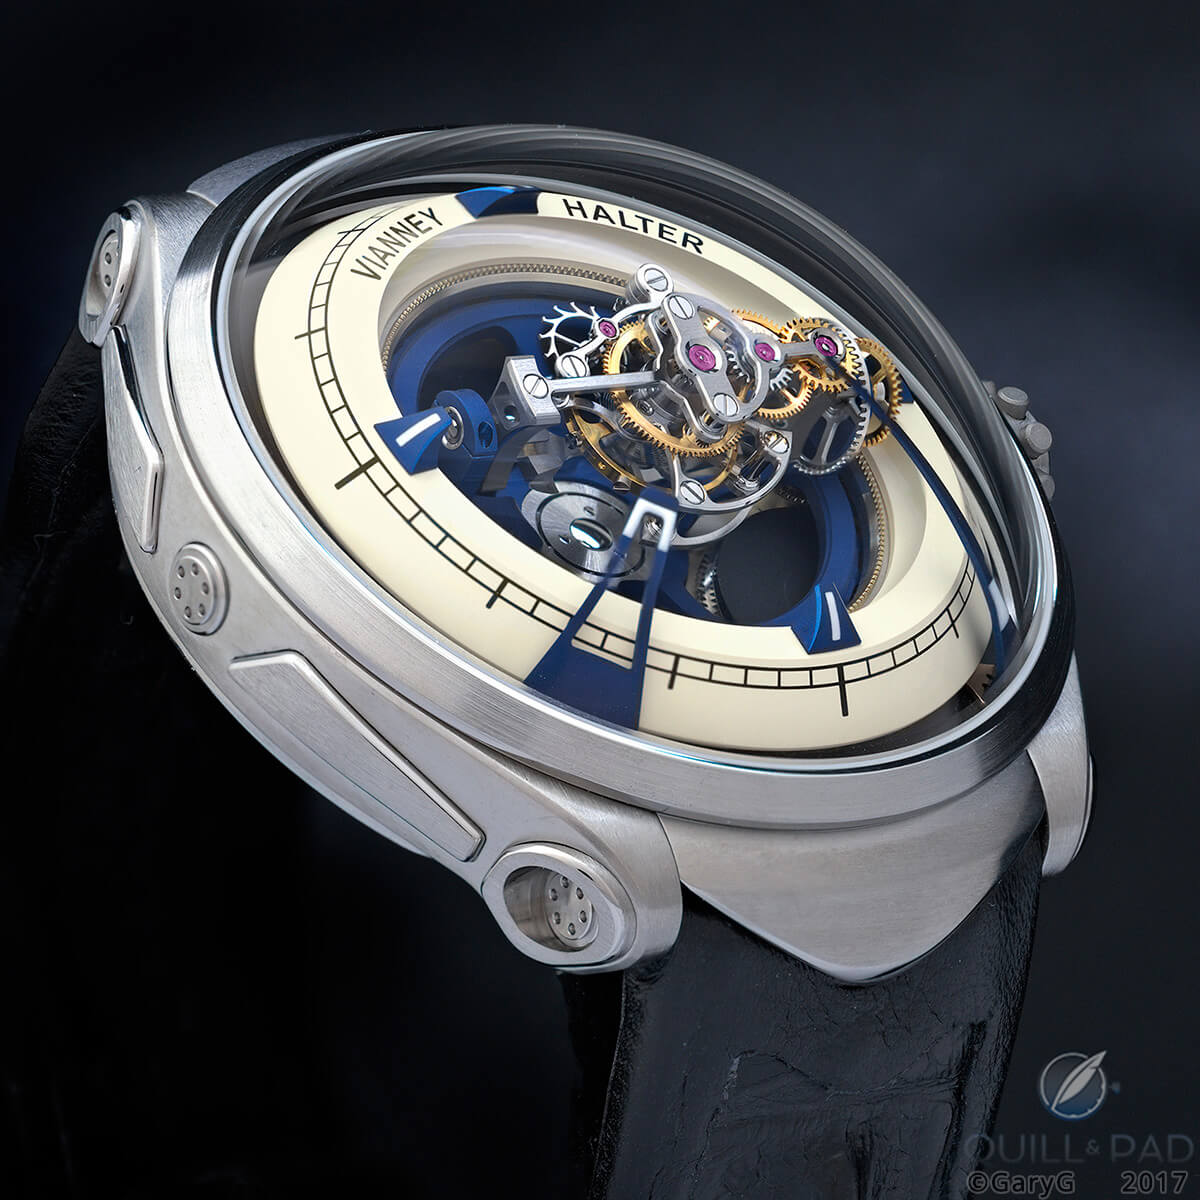 Don't be mad, Vianney: Deep Space Tourbillon by Vianney Halter